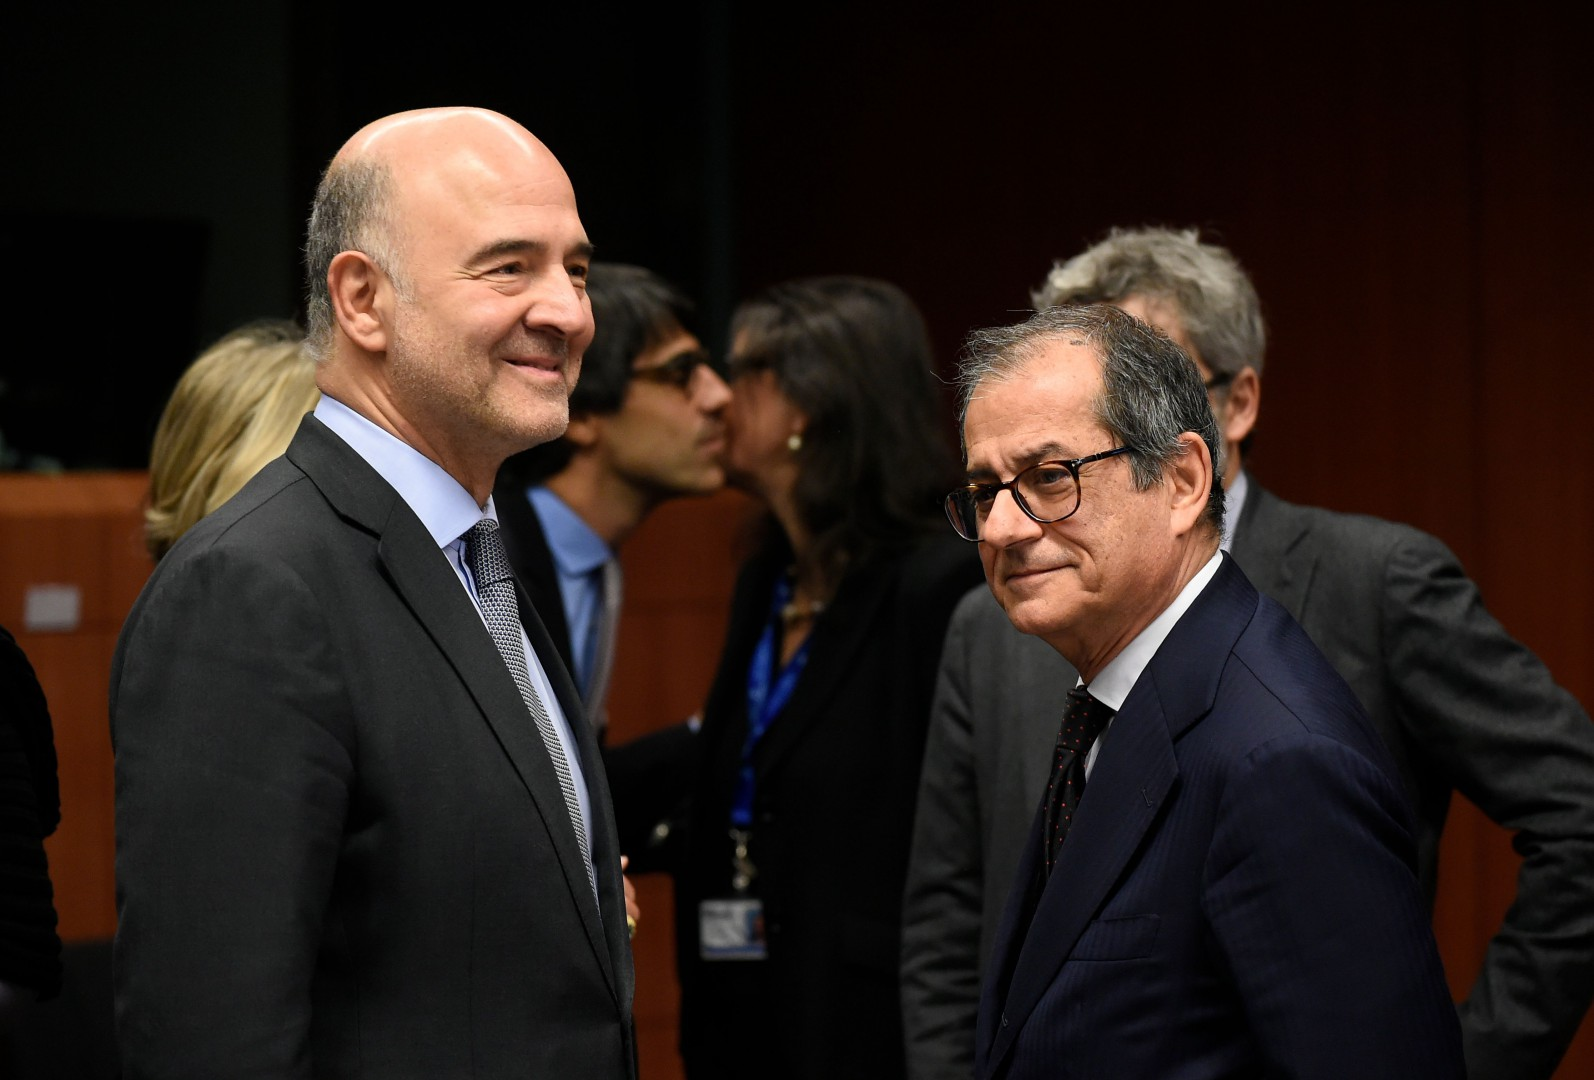 EU Commissioner of Economic and Financial Affairs, Taxation and Customs Pierre Moscovici (L) talks with Italian Minister of Economy and Finance Giovanni Tria during an Eurogroup meeting at the EU headquarters in Brussels on Novembre 19, 2018. (Photo by JOHN THYS / AFP)